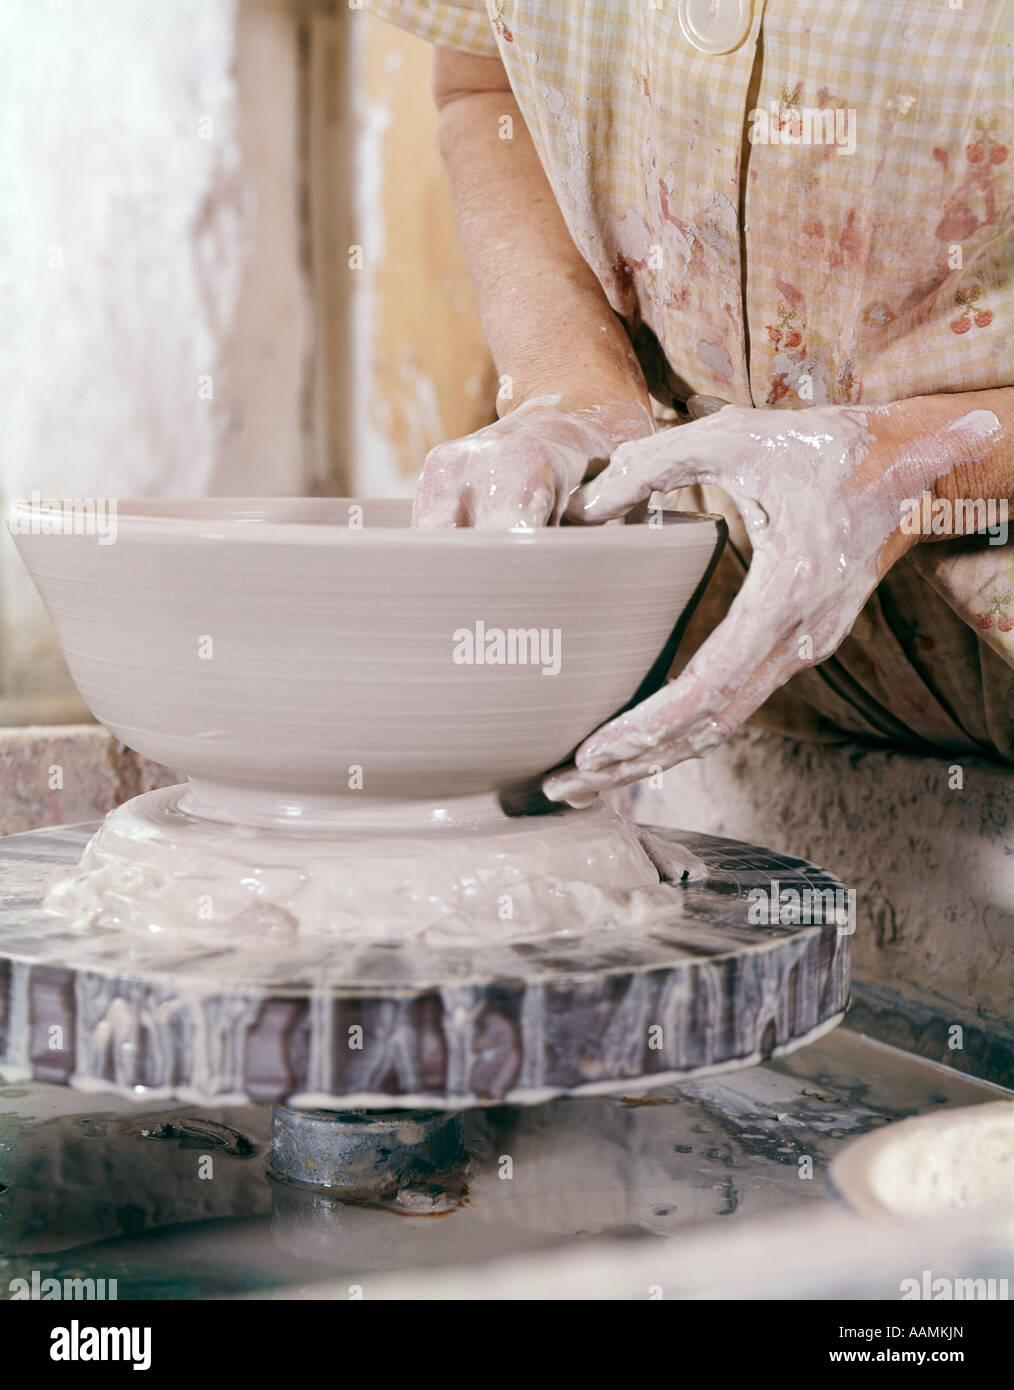 ARTS AND CRAFTS POTTERY WHEEL CLAY 1960 1960s RETRO - Stock Image